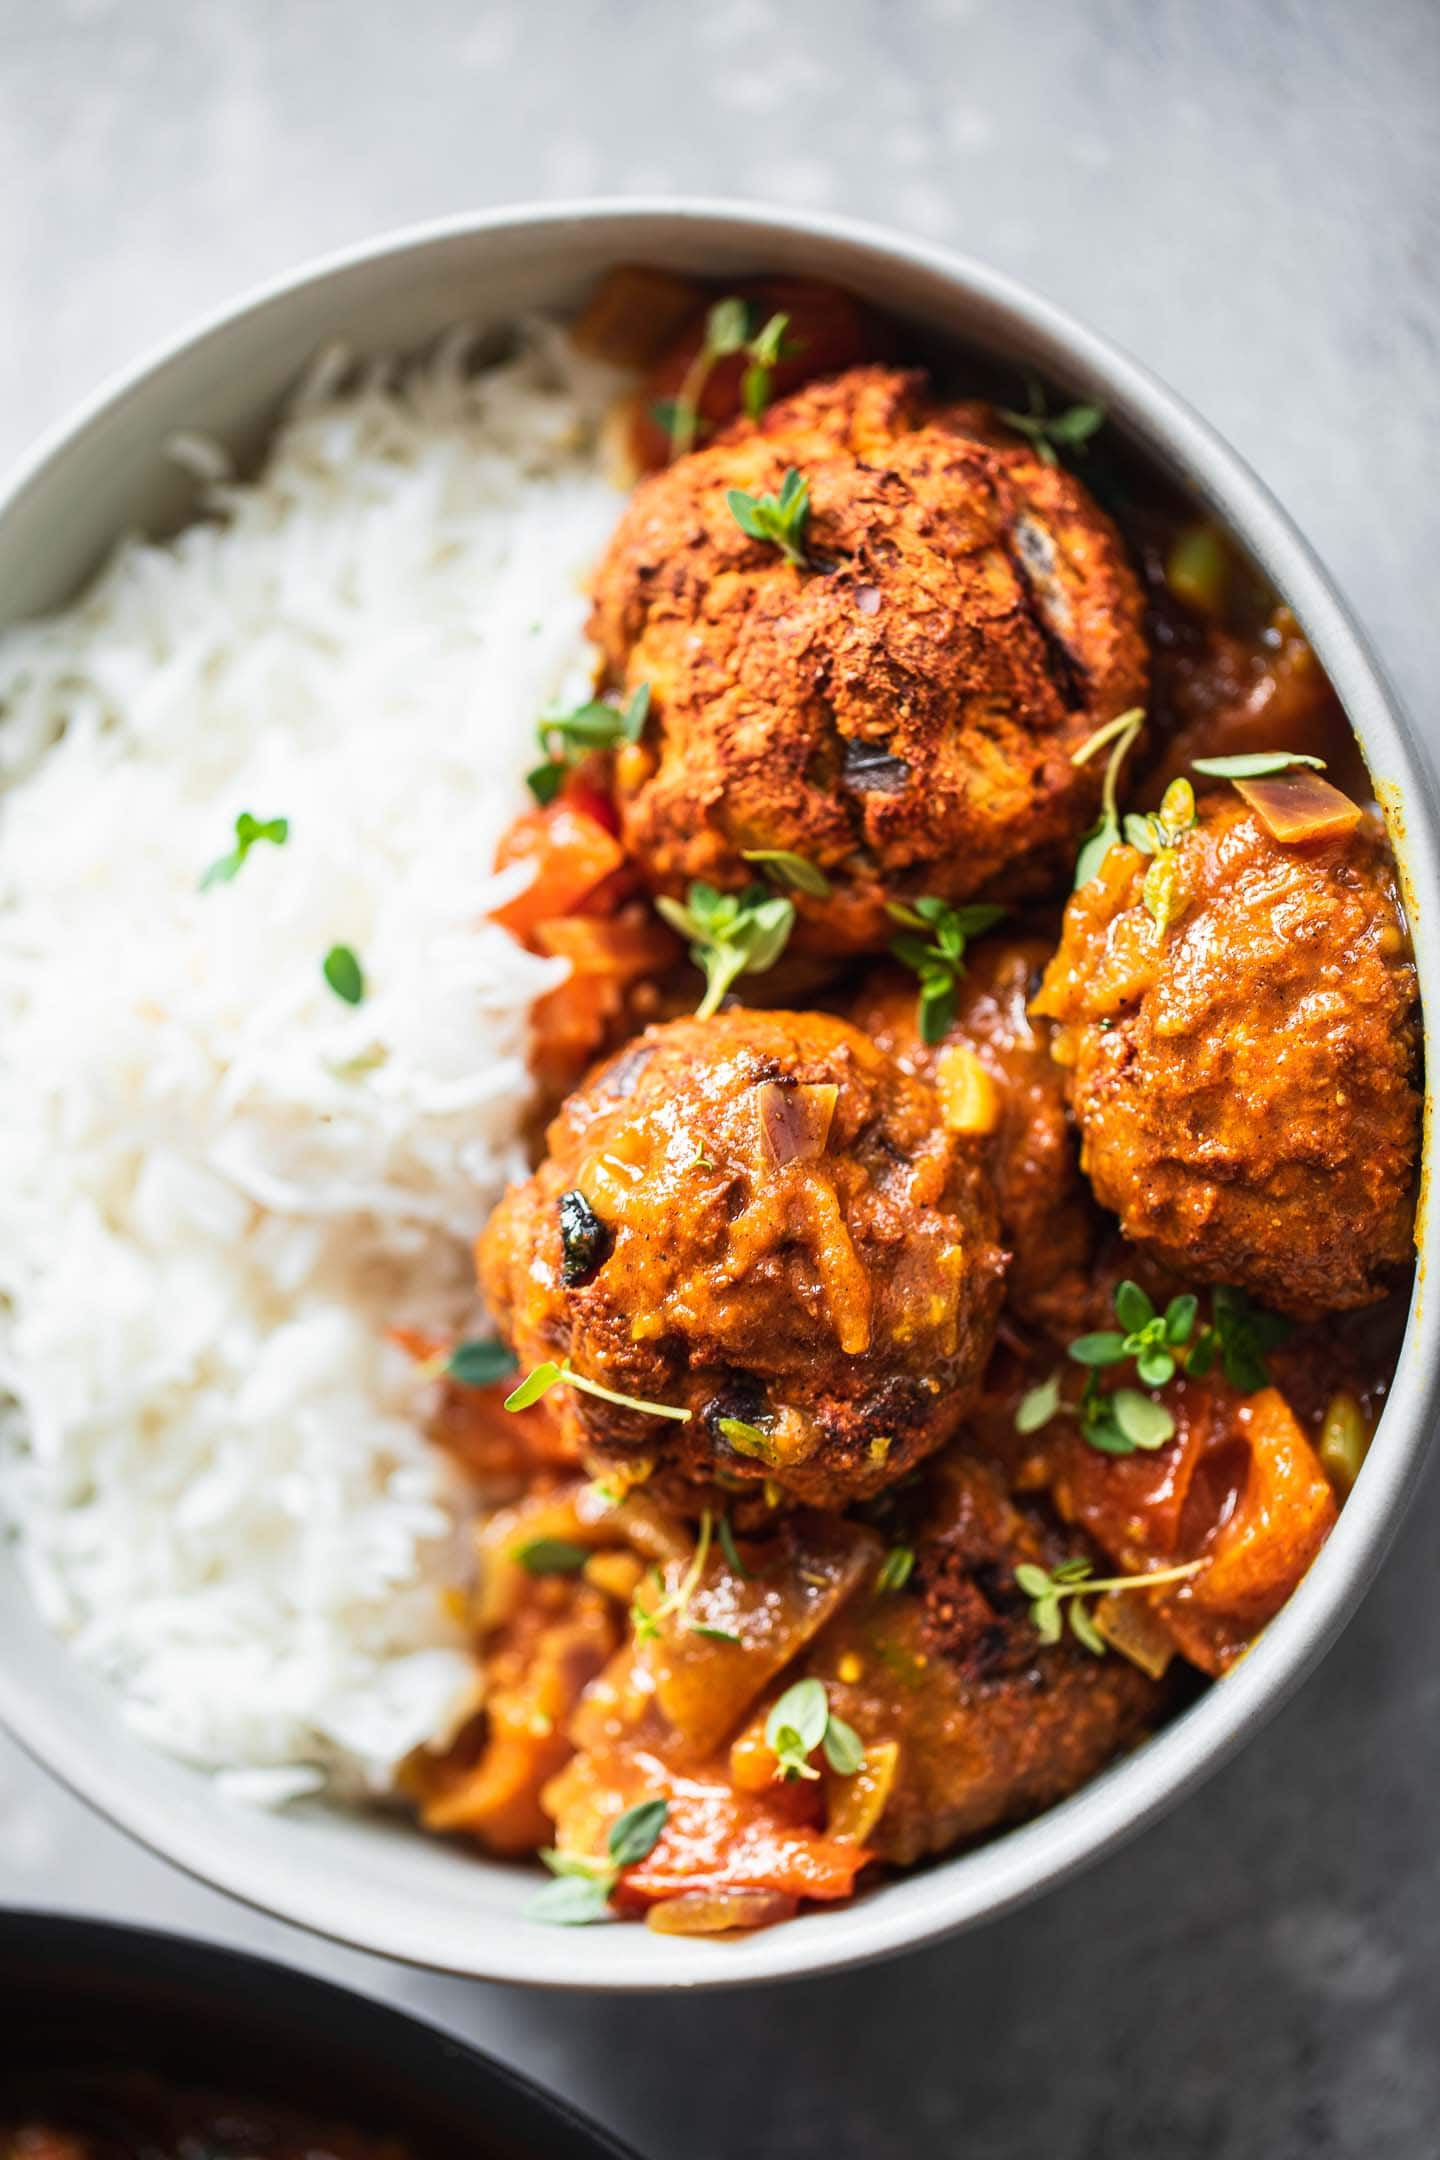 Vegan meatballs with curry sauce and rice